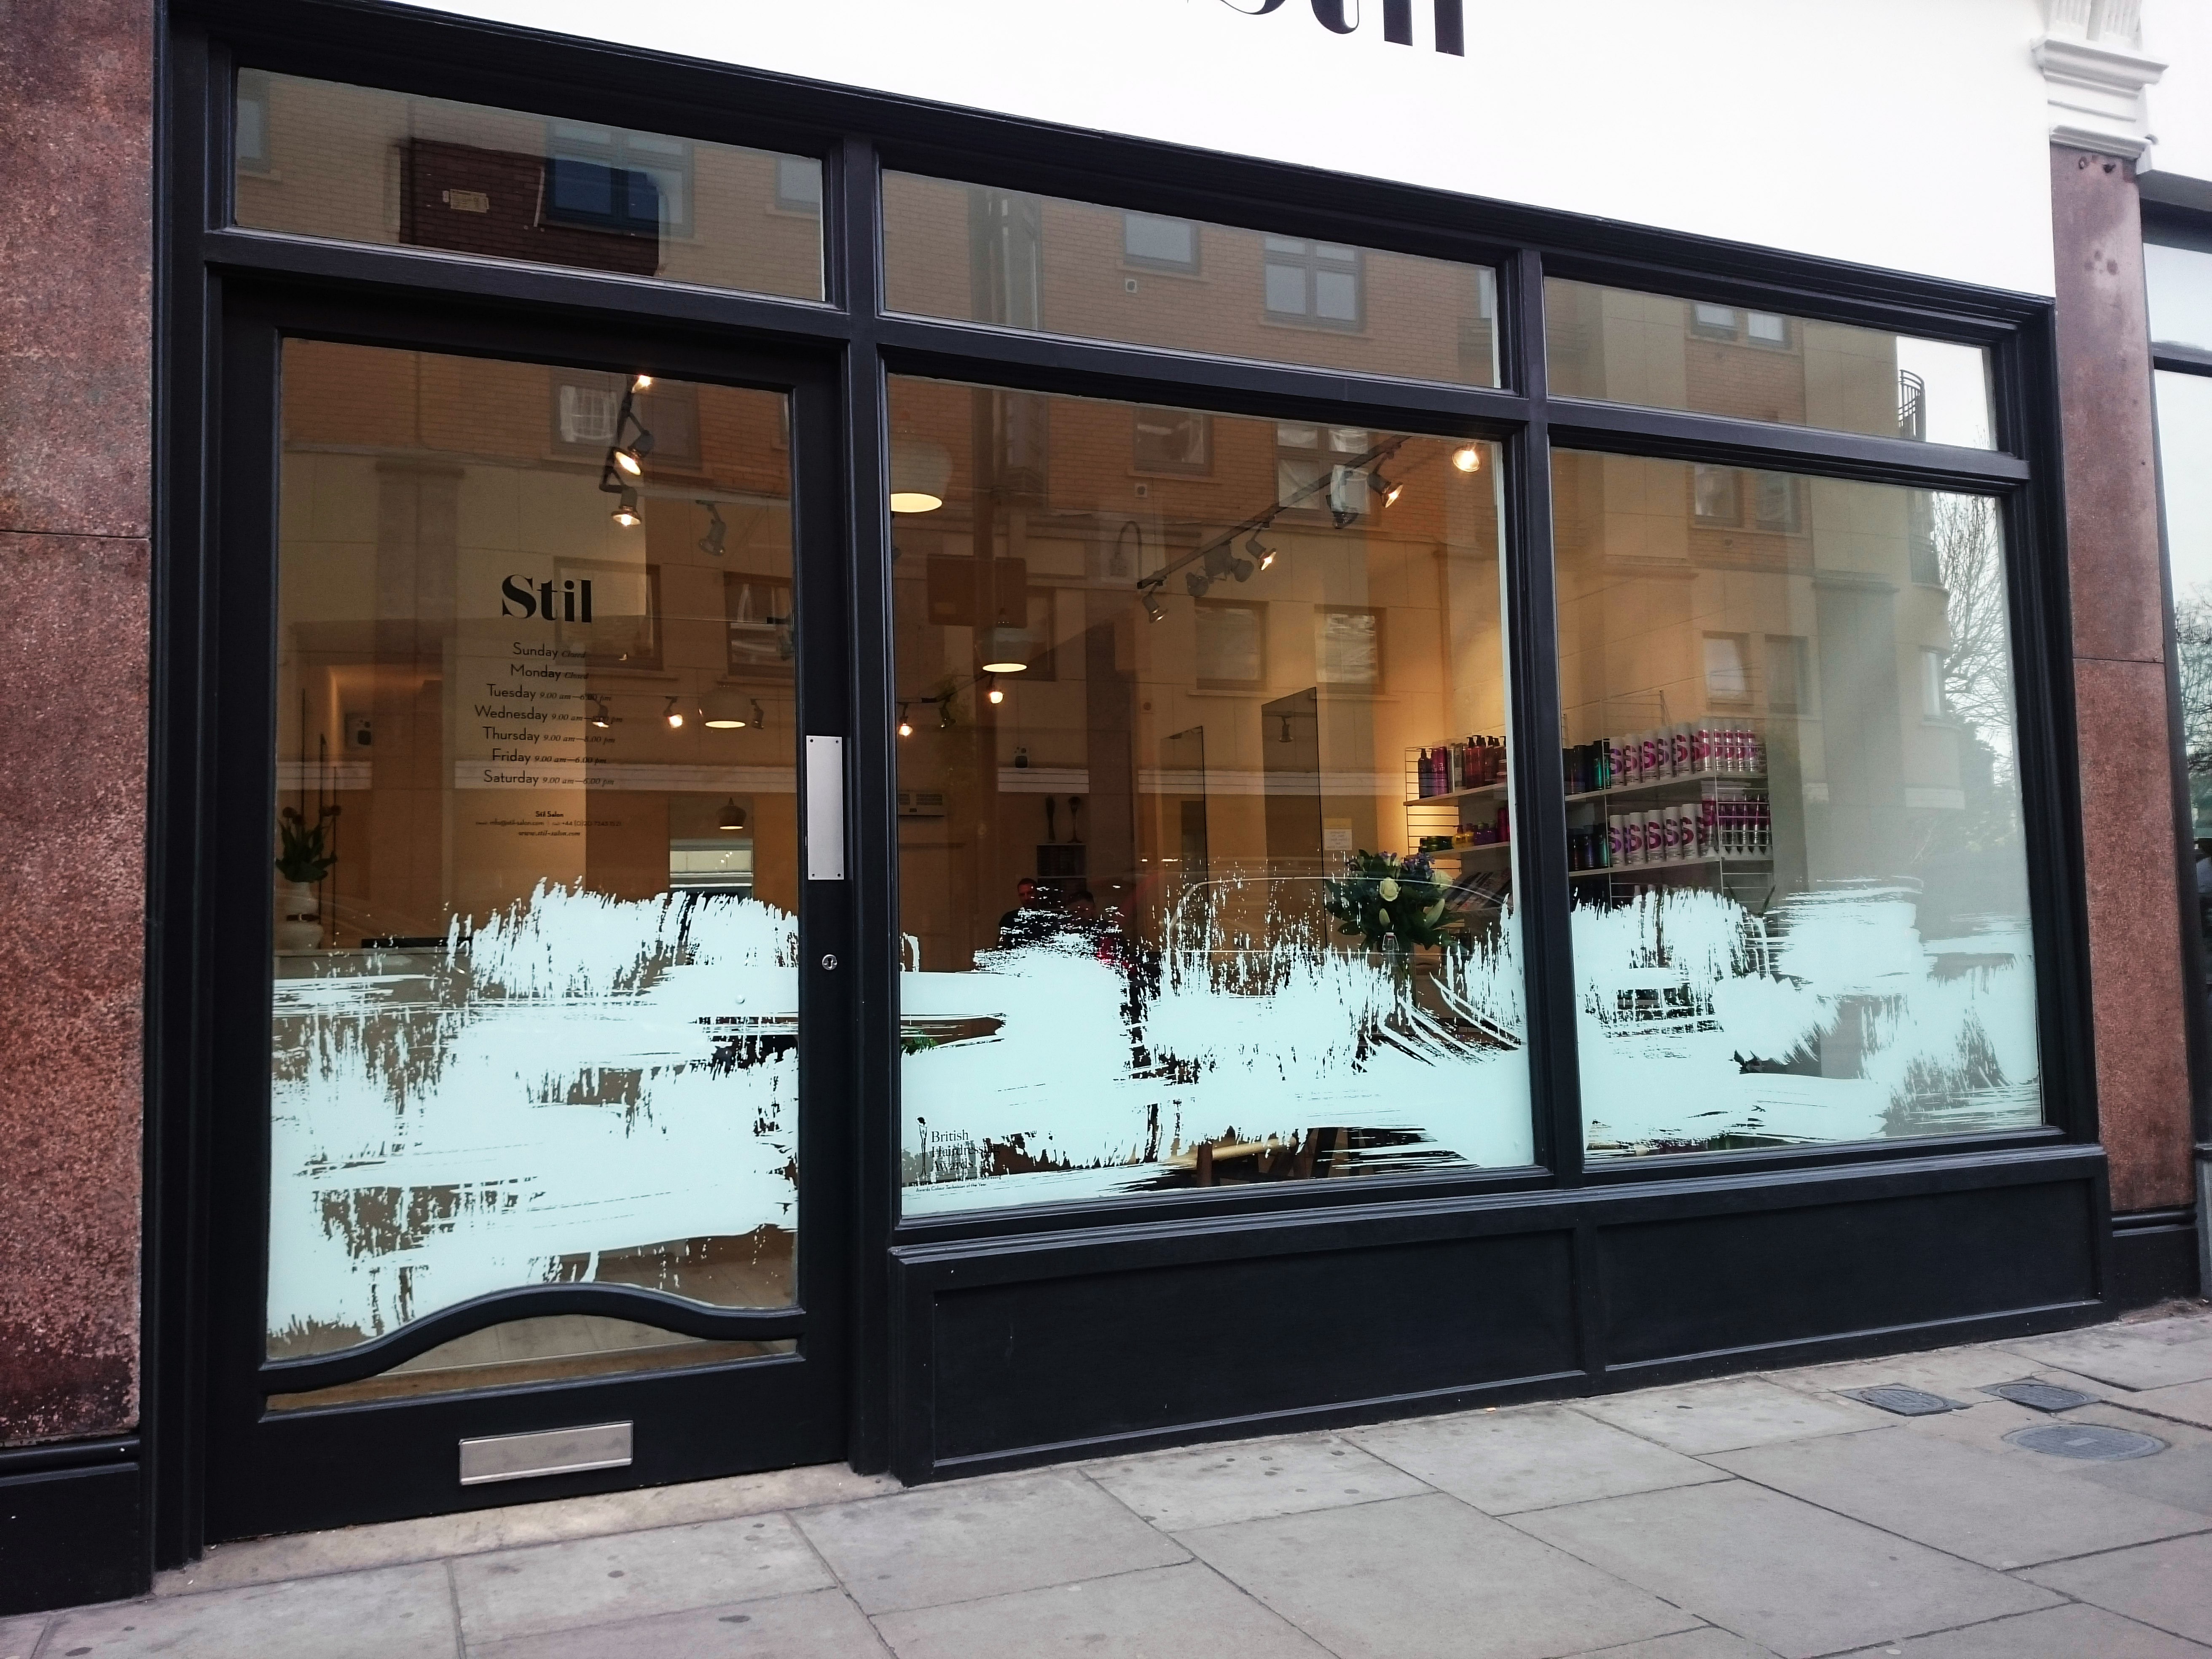 Shop front window graphics - London